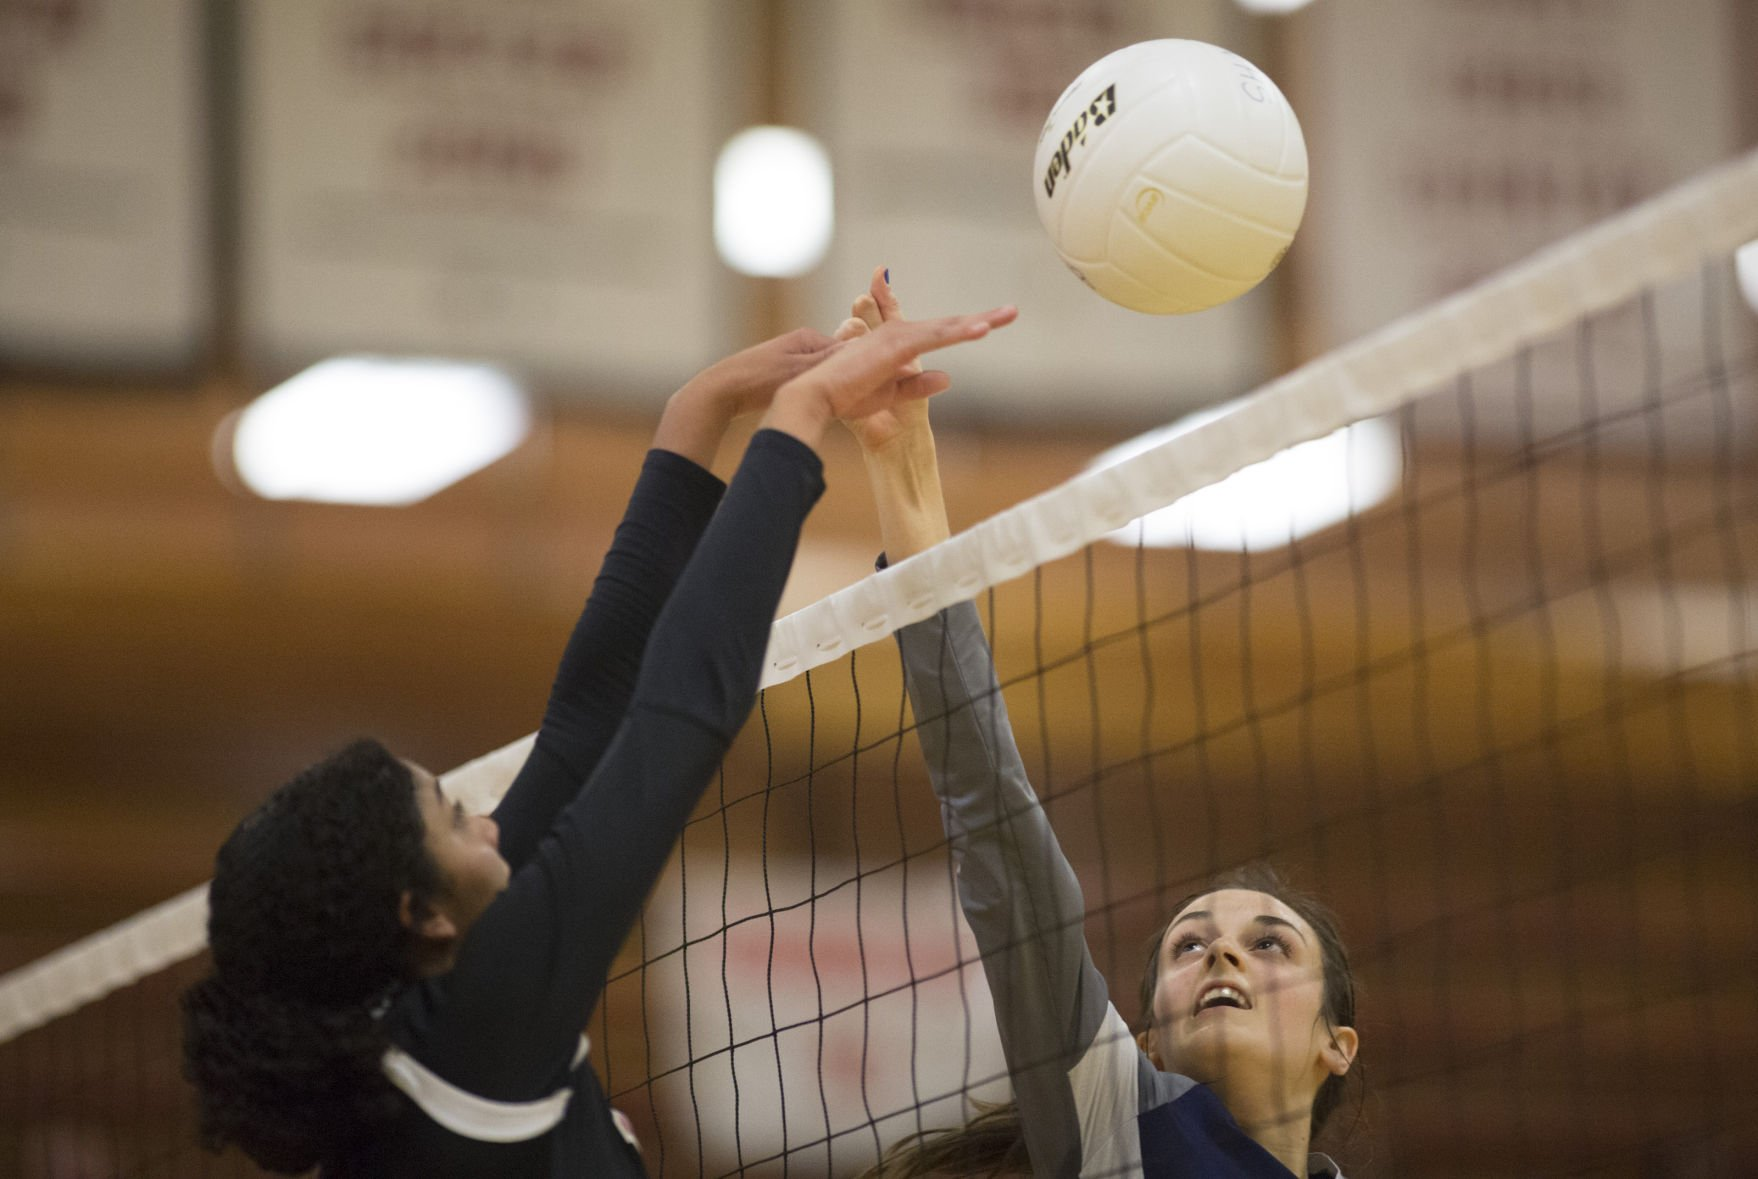 WEDNESDAY VOLLEYBALL: Wilcox sweeps & No. 4 Cheshire remains unbeaten